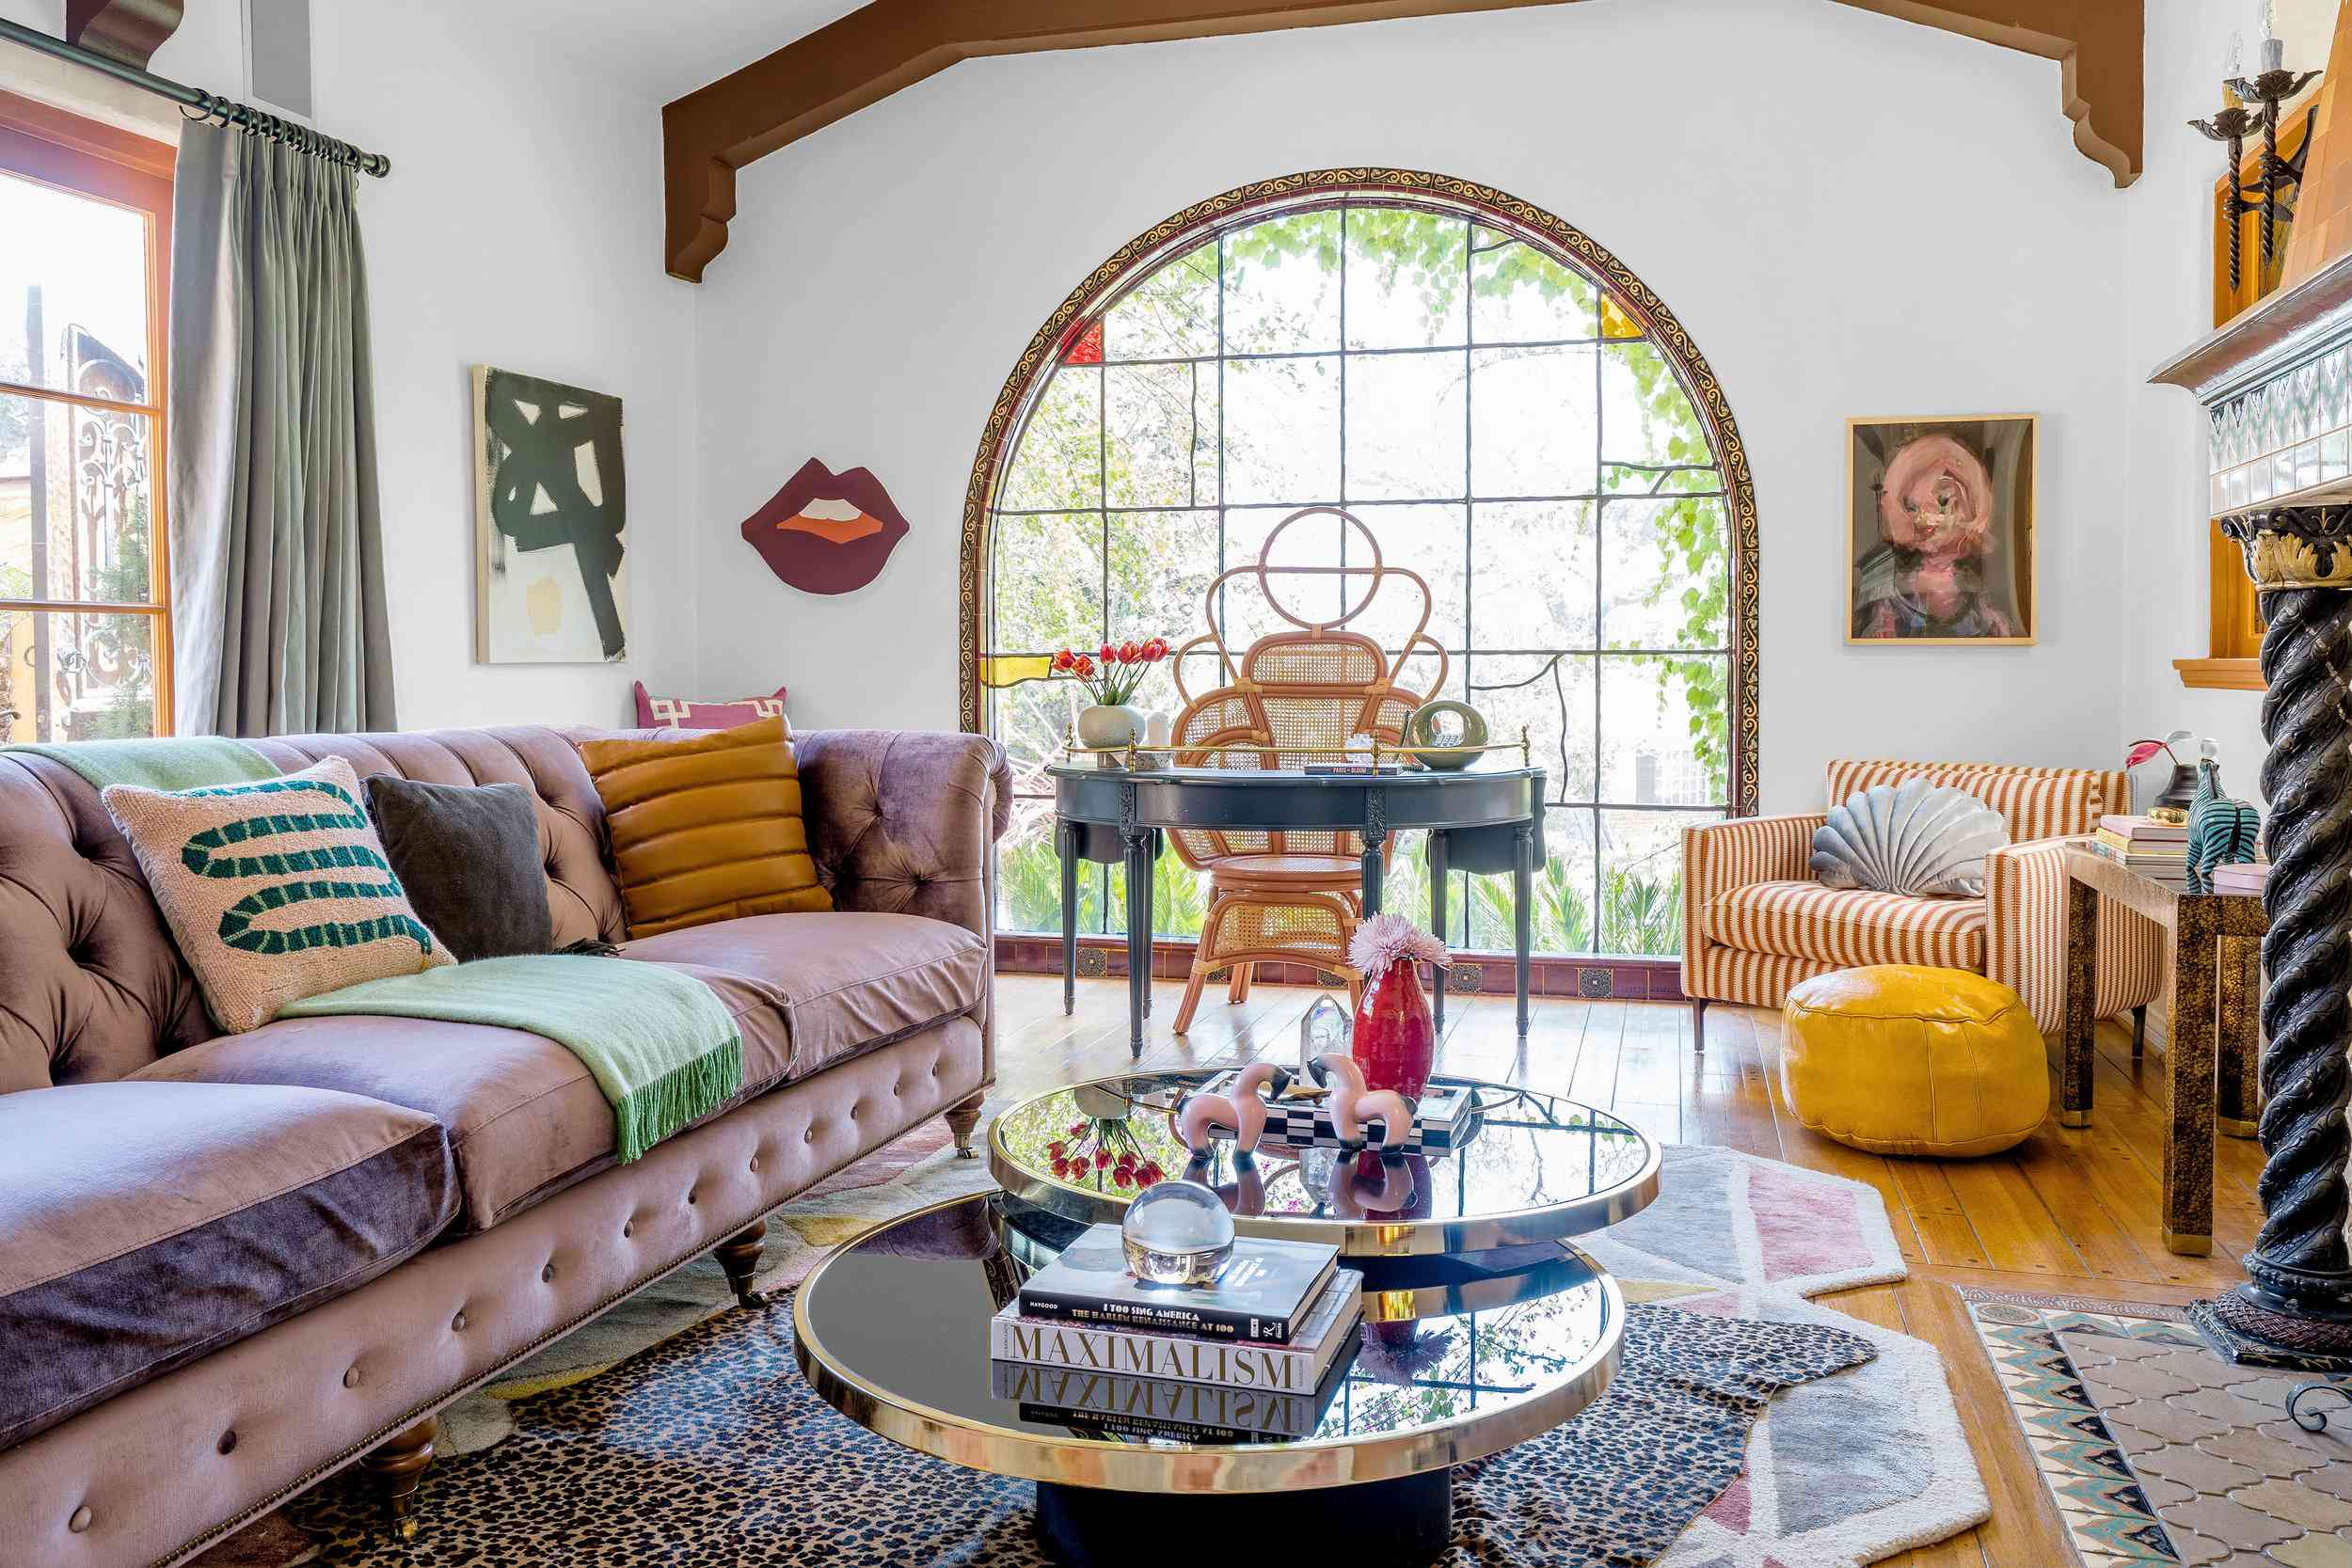 Maximalist decor in a living room